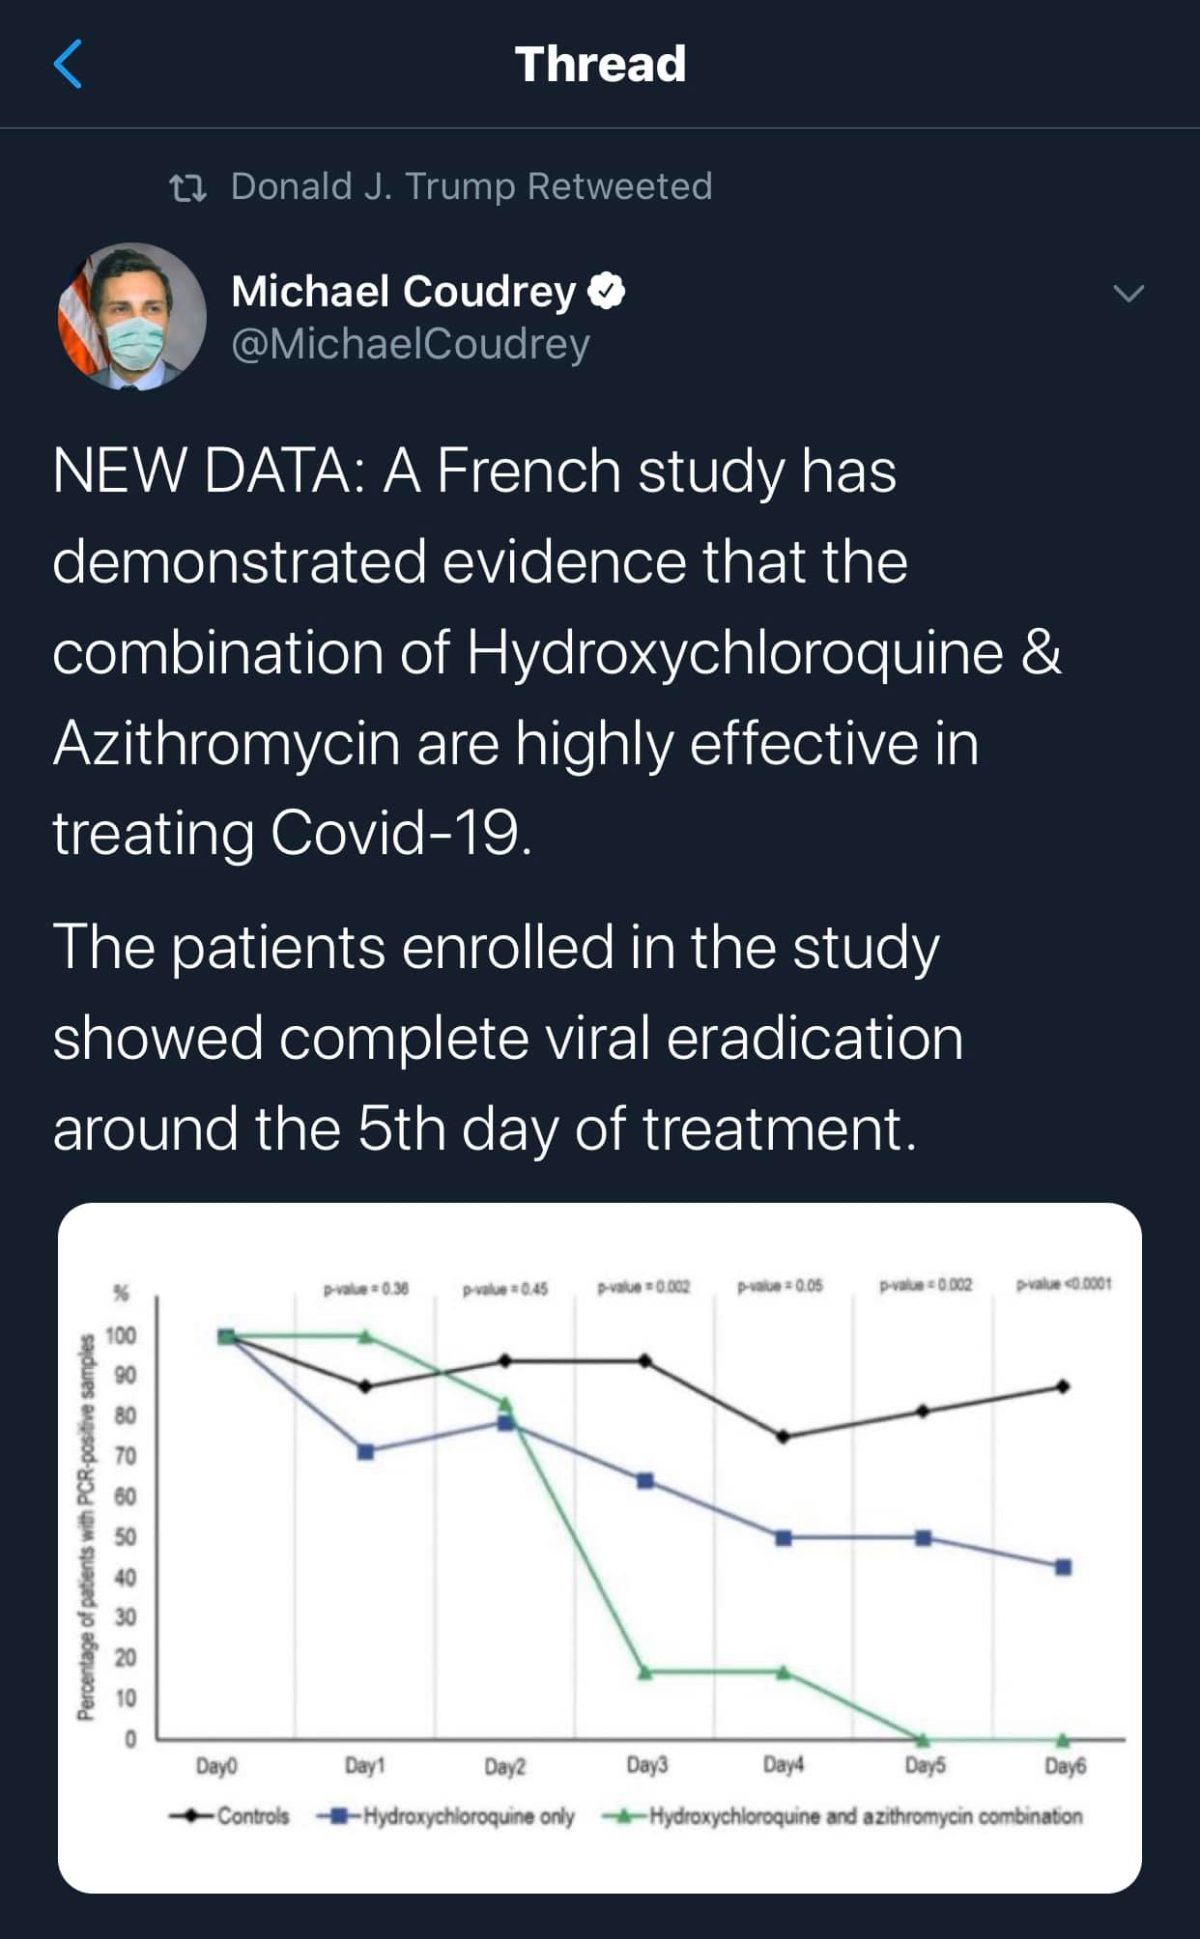 Azithromycin & Hydroxychloroquine are Showing Effective Results Against COVID-19